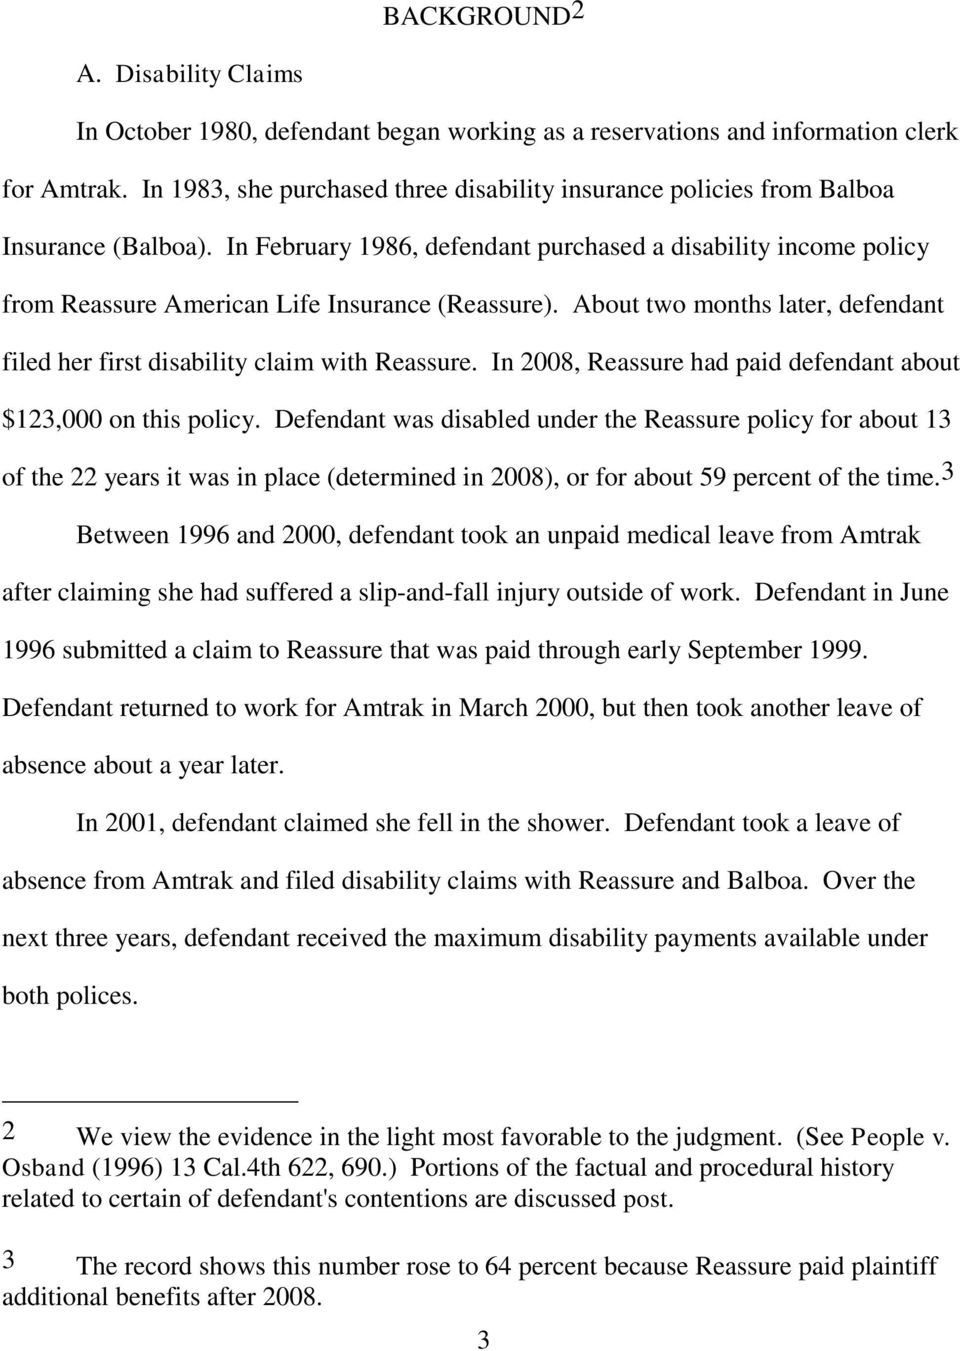 In February 1986, defendant purchased a disability income policy from Reassure American Life Insurance (Reassure). About two months later, defendant filed her first disability claim with Reassure.